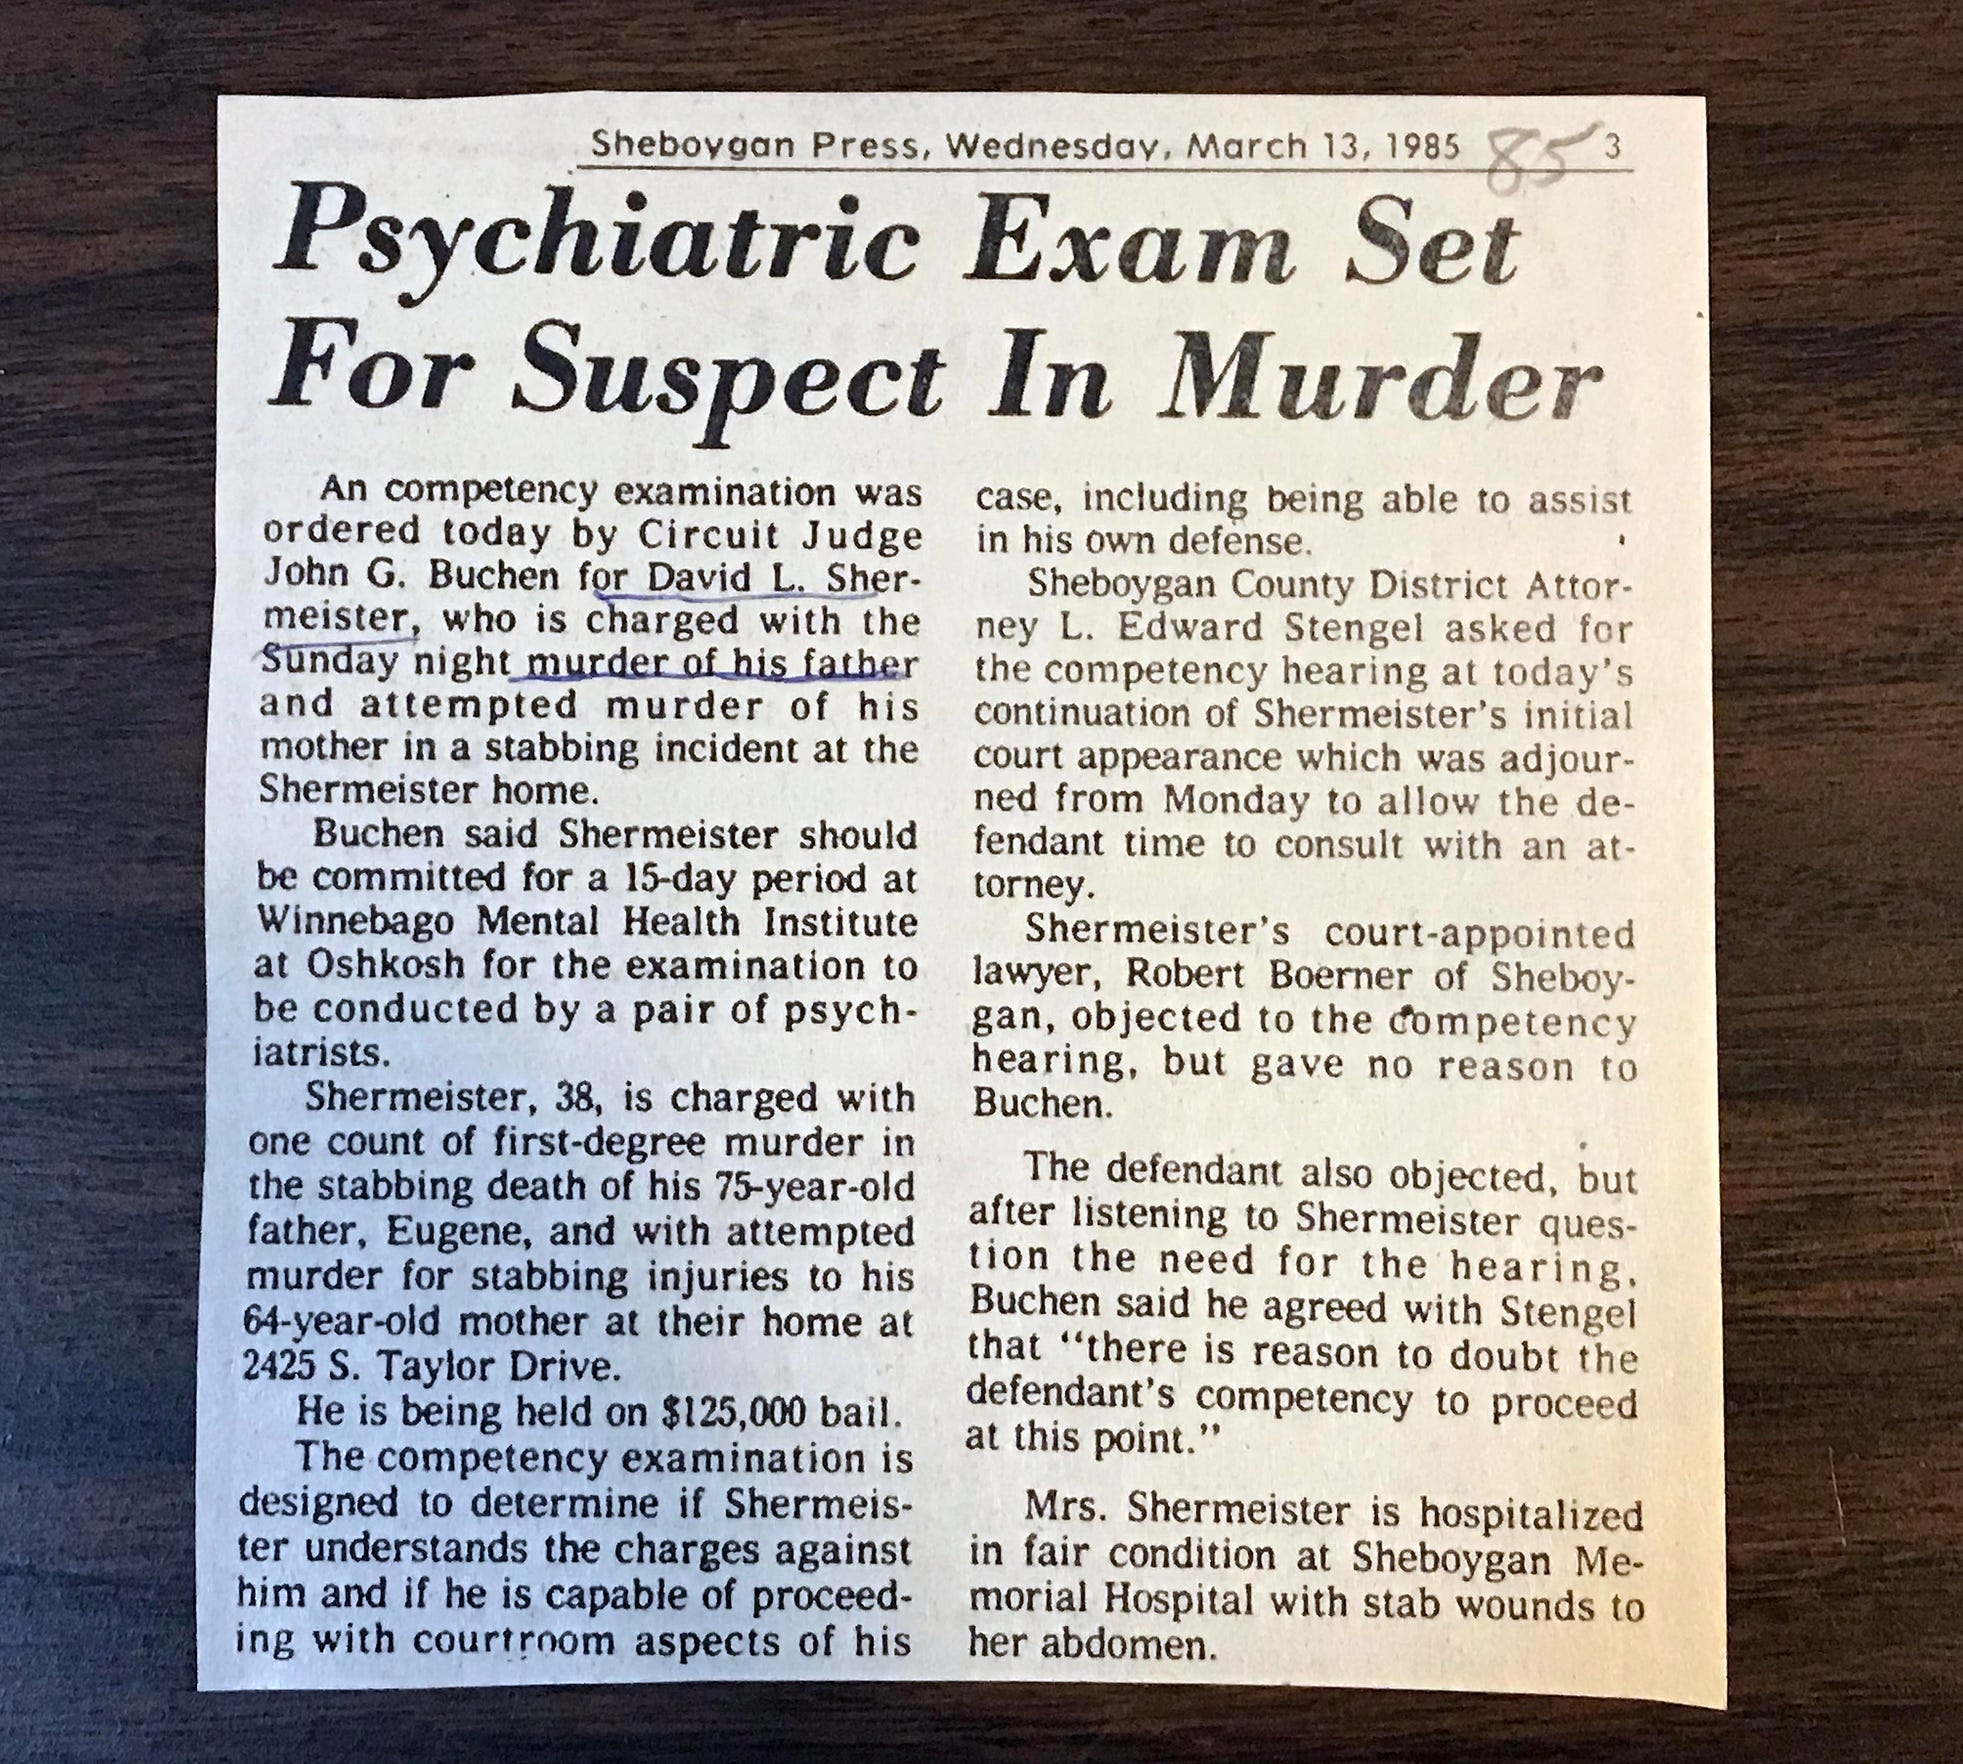 A clipping from the Sheboygan Press following the court proceedings days after the murder documents part of the process of determining David's level of competency. Judge John G. Buchen ordered a competency examination of David at Winnebago Mental Health Institute.